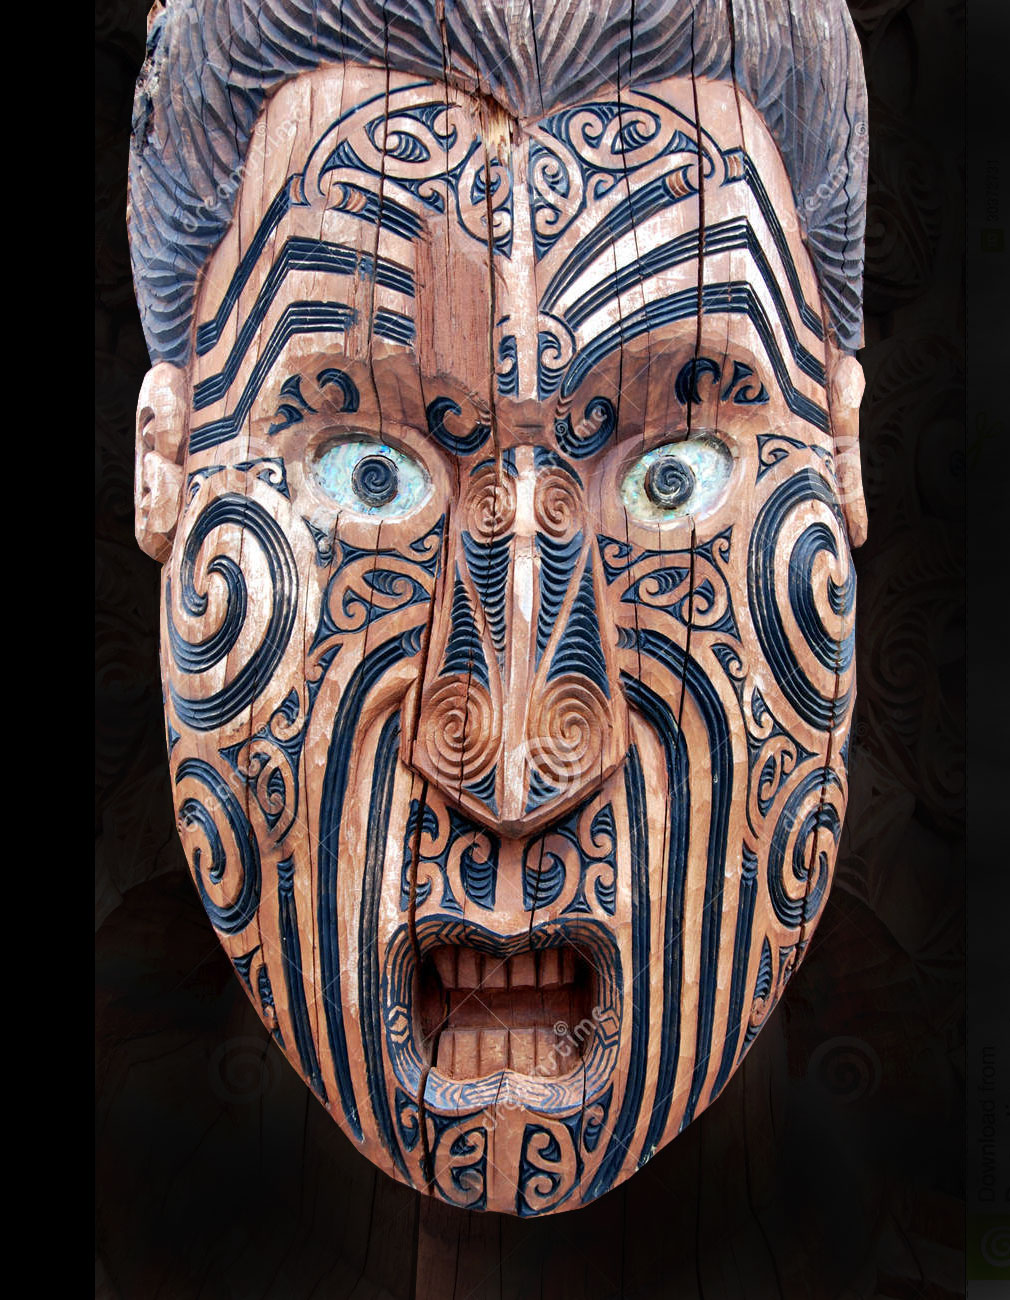 Maori mask from New Zealand